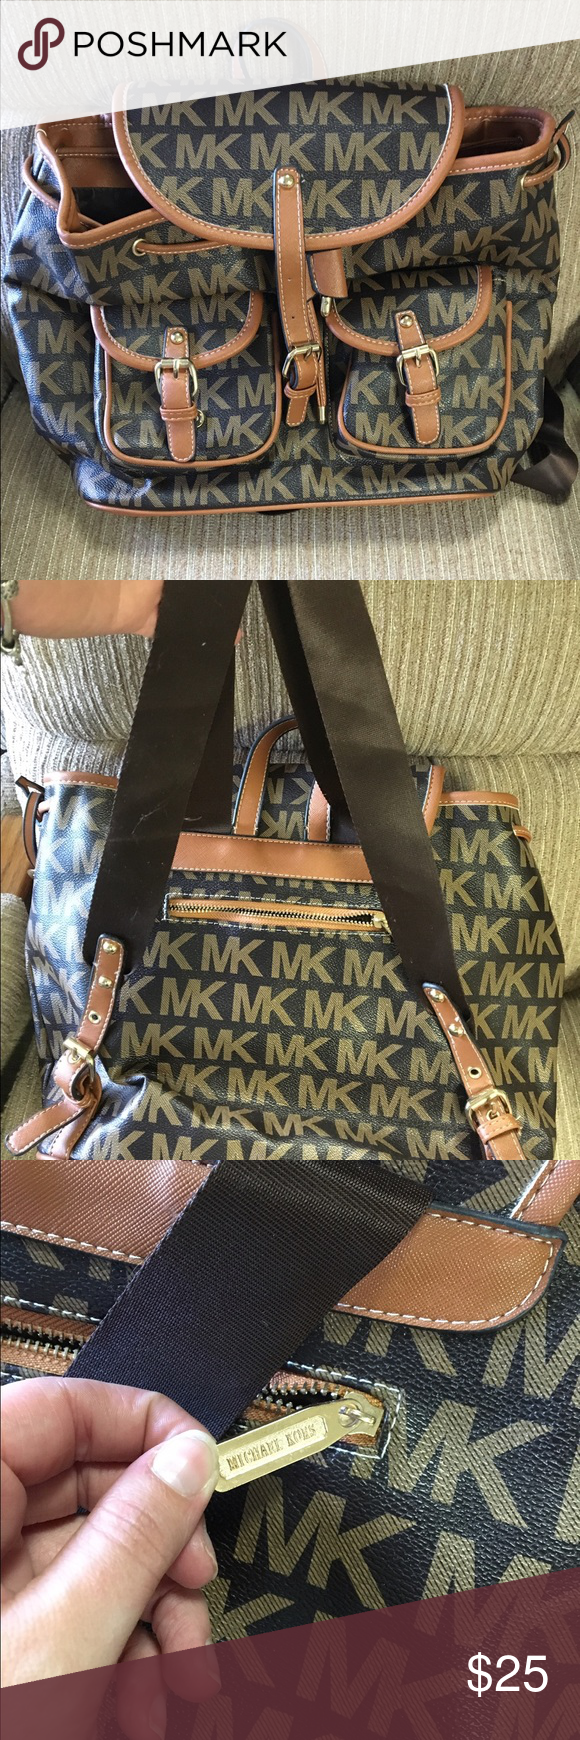 Cute bag Not sure of authenticity. Says Michael Kors but i do not believe it to be so. Still a cute bag though. Bags Shoulder Bags